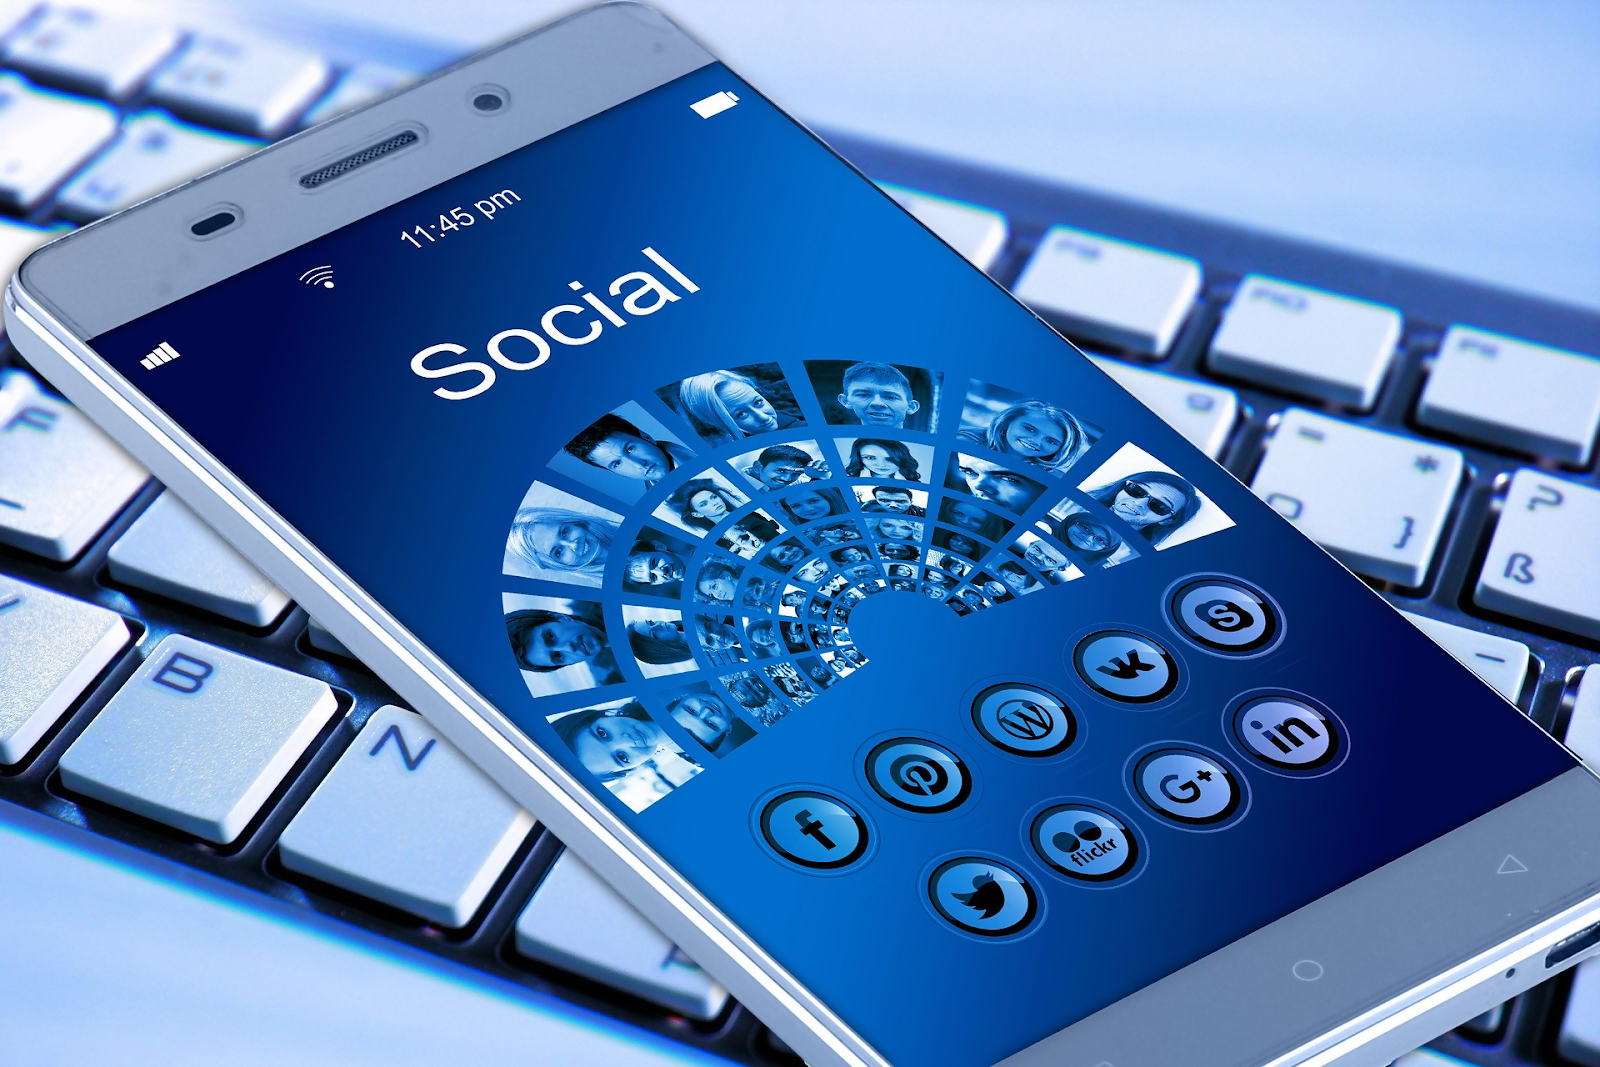 Top 5 Negative Effects of Social Networks on Students